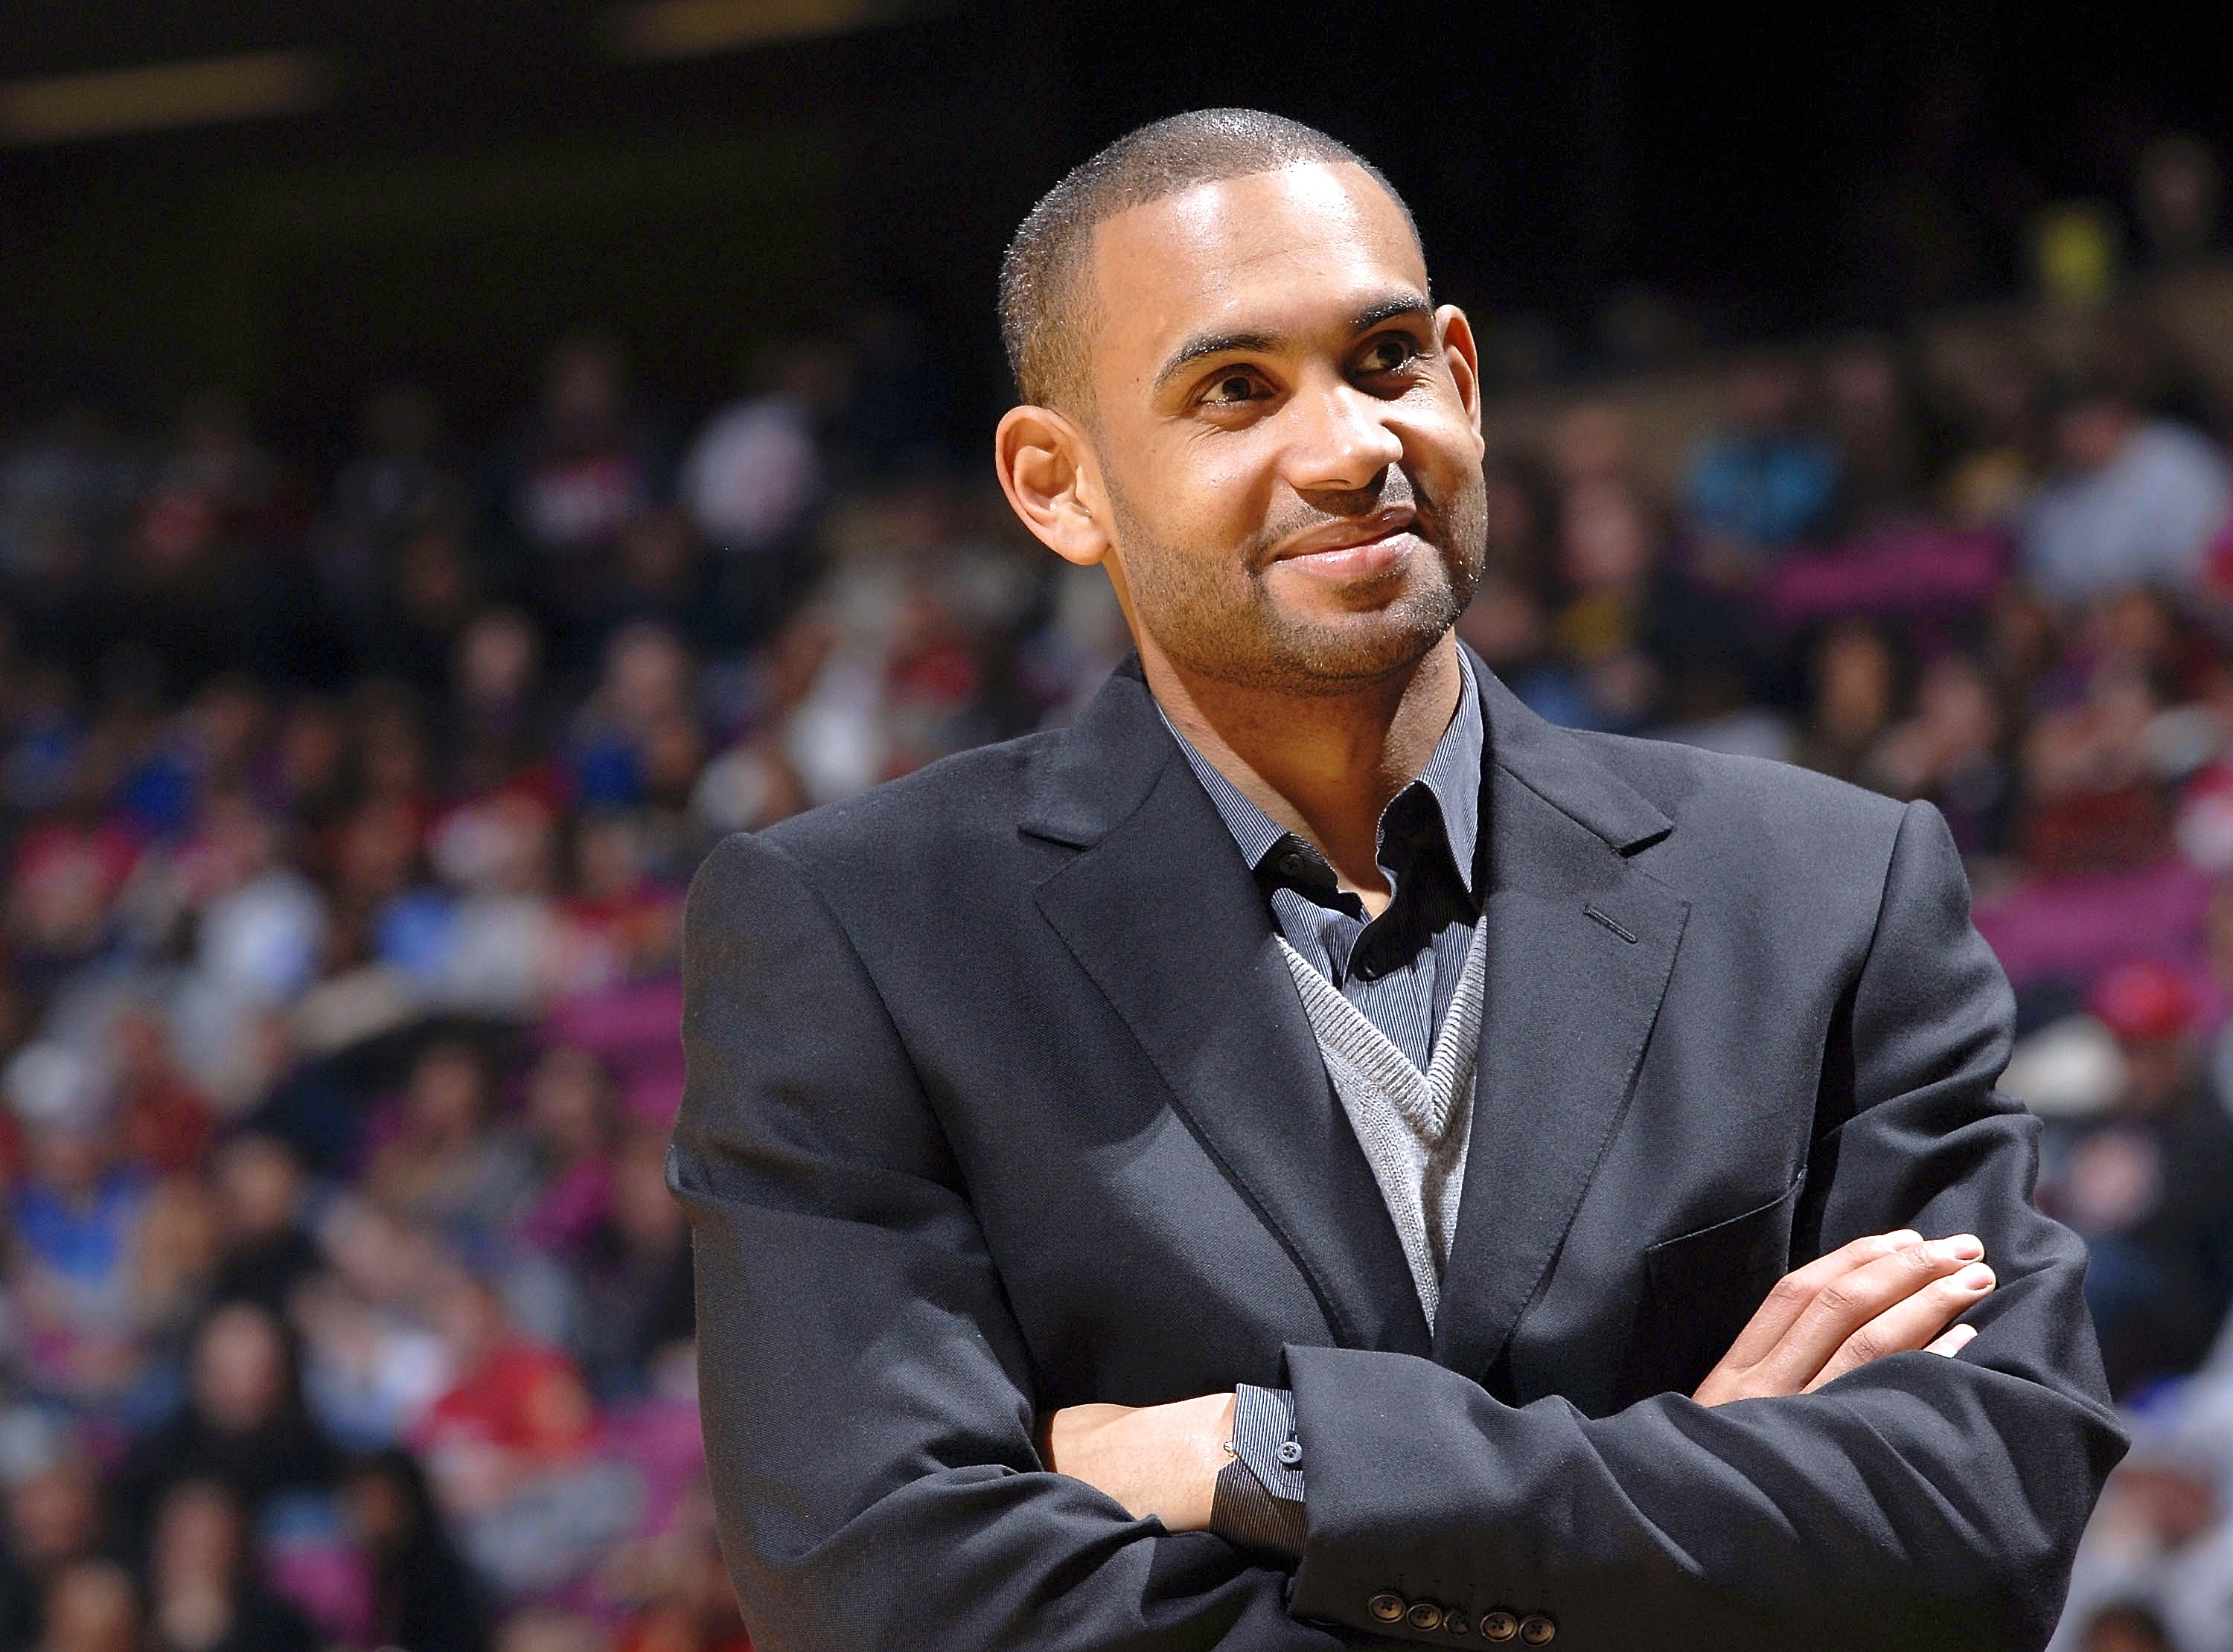 The Inside Stuff with Grant Hill Career Stories of the Ex NBA